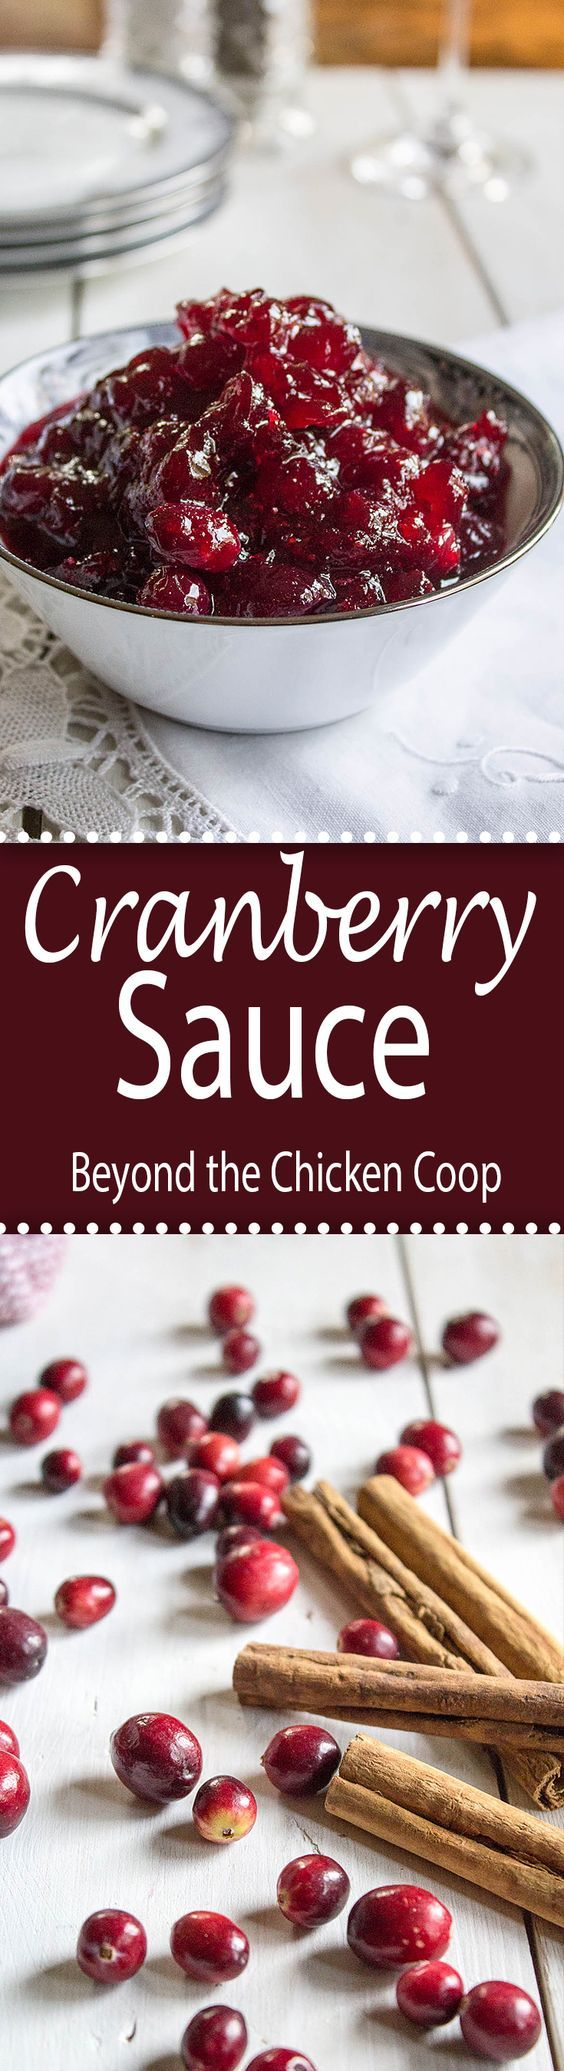 Homemade Whole Berry Cranberry Sauce | Beyond the Chicken Coop